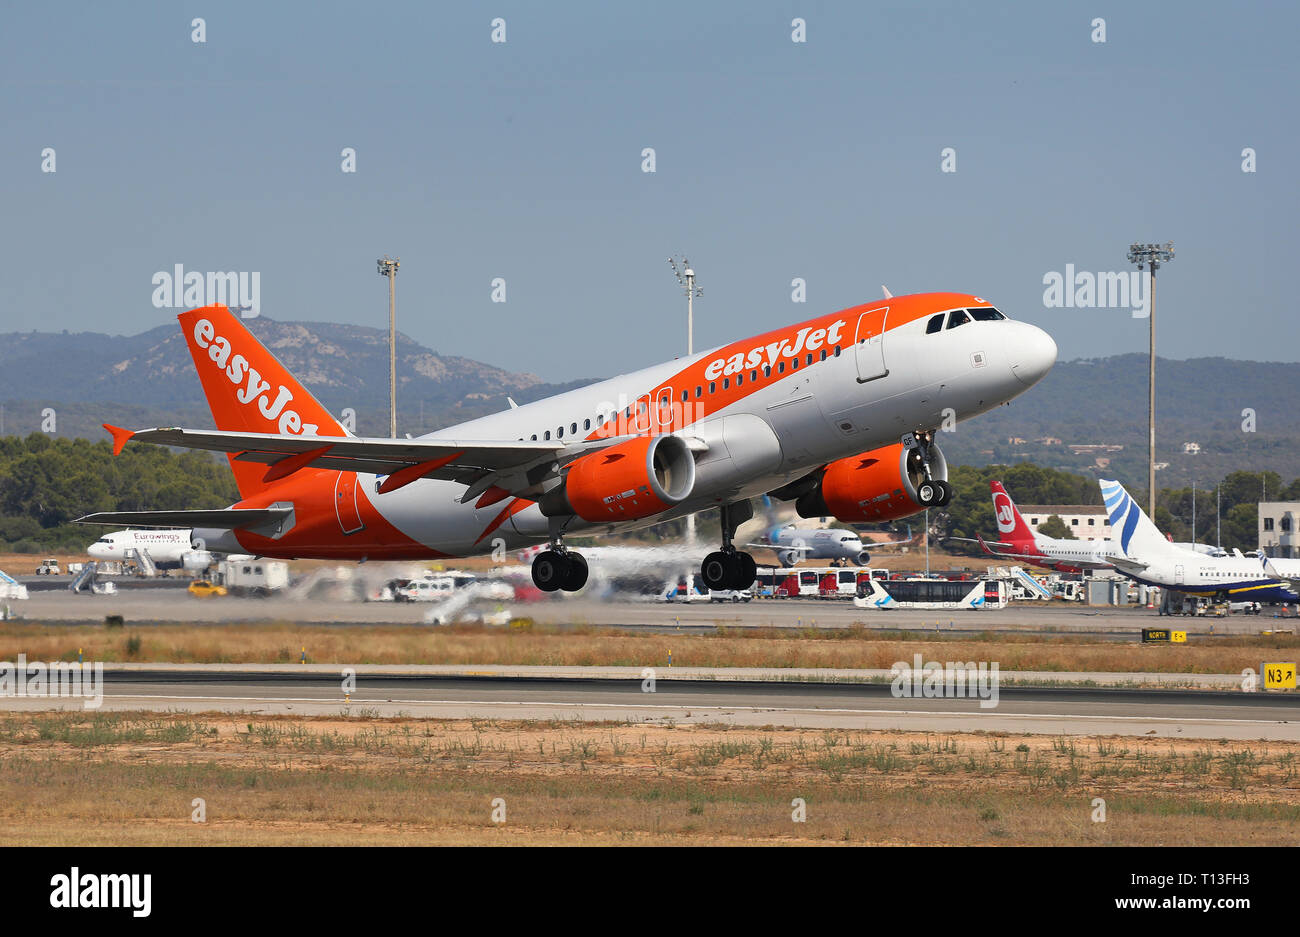 An Easyjet company Airliner taking off from palma de mallorca airport, one of main destinations for european tourists during summer Stock Photo